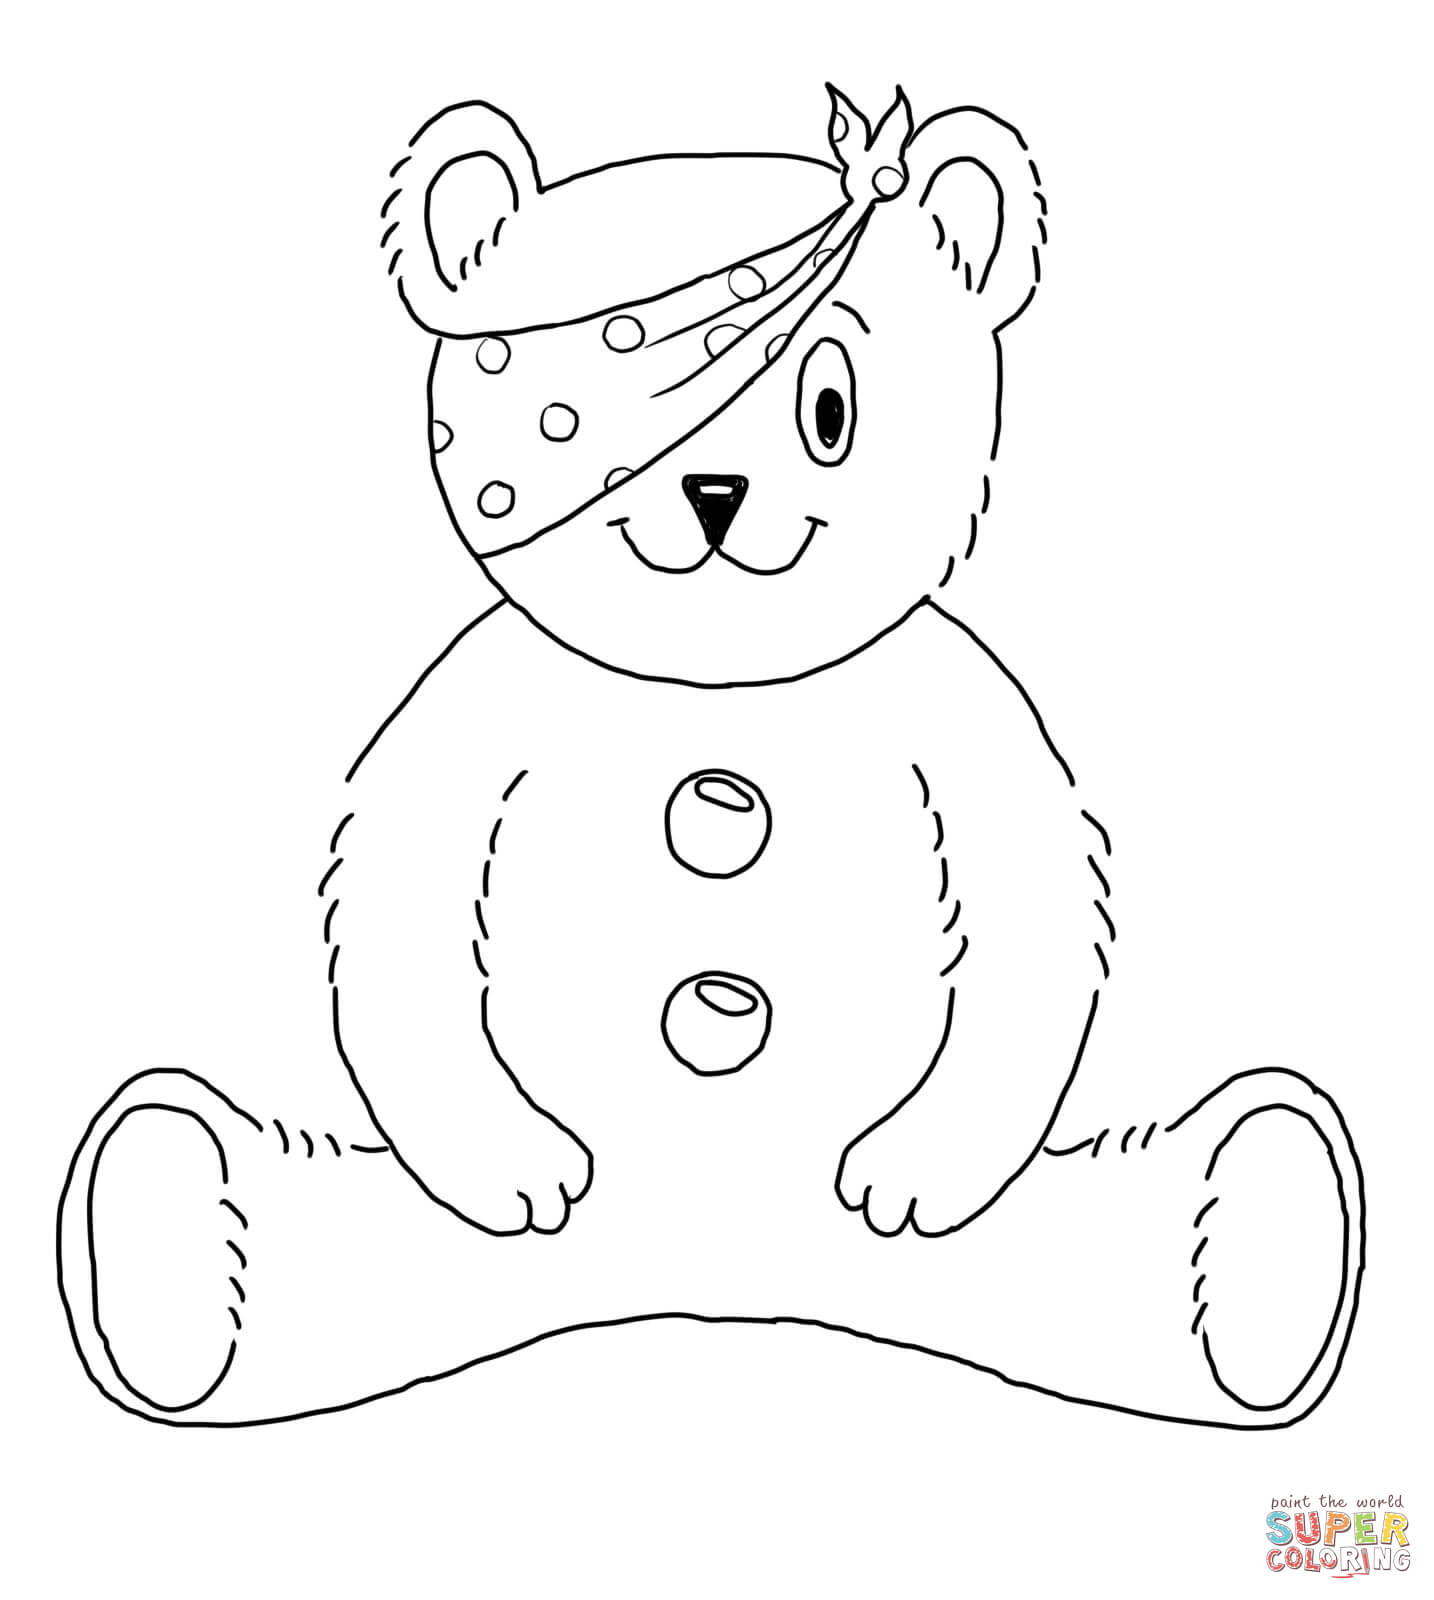 pudsey bear template printables pudsey bear colouring template bear coloring pages template bear pudsey printables